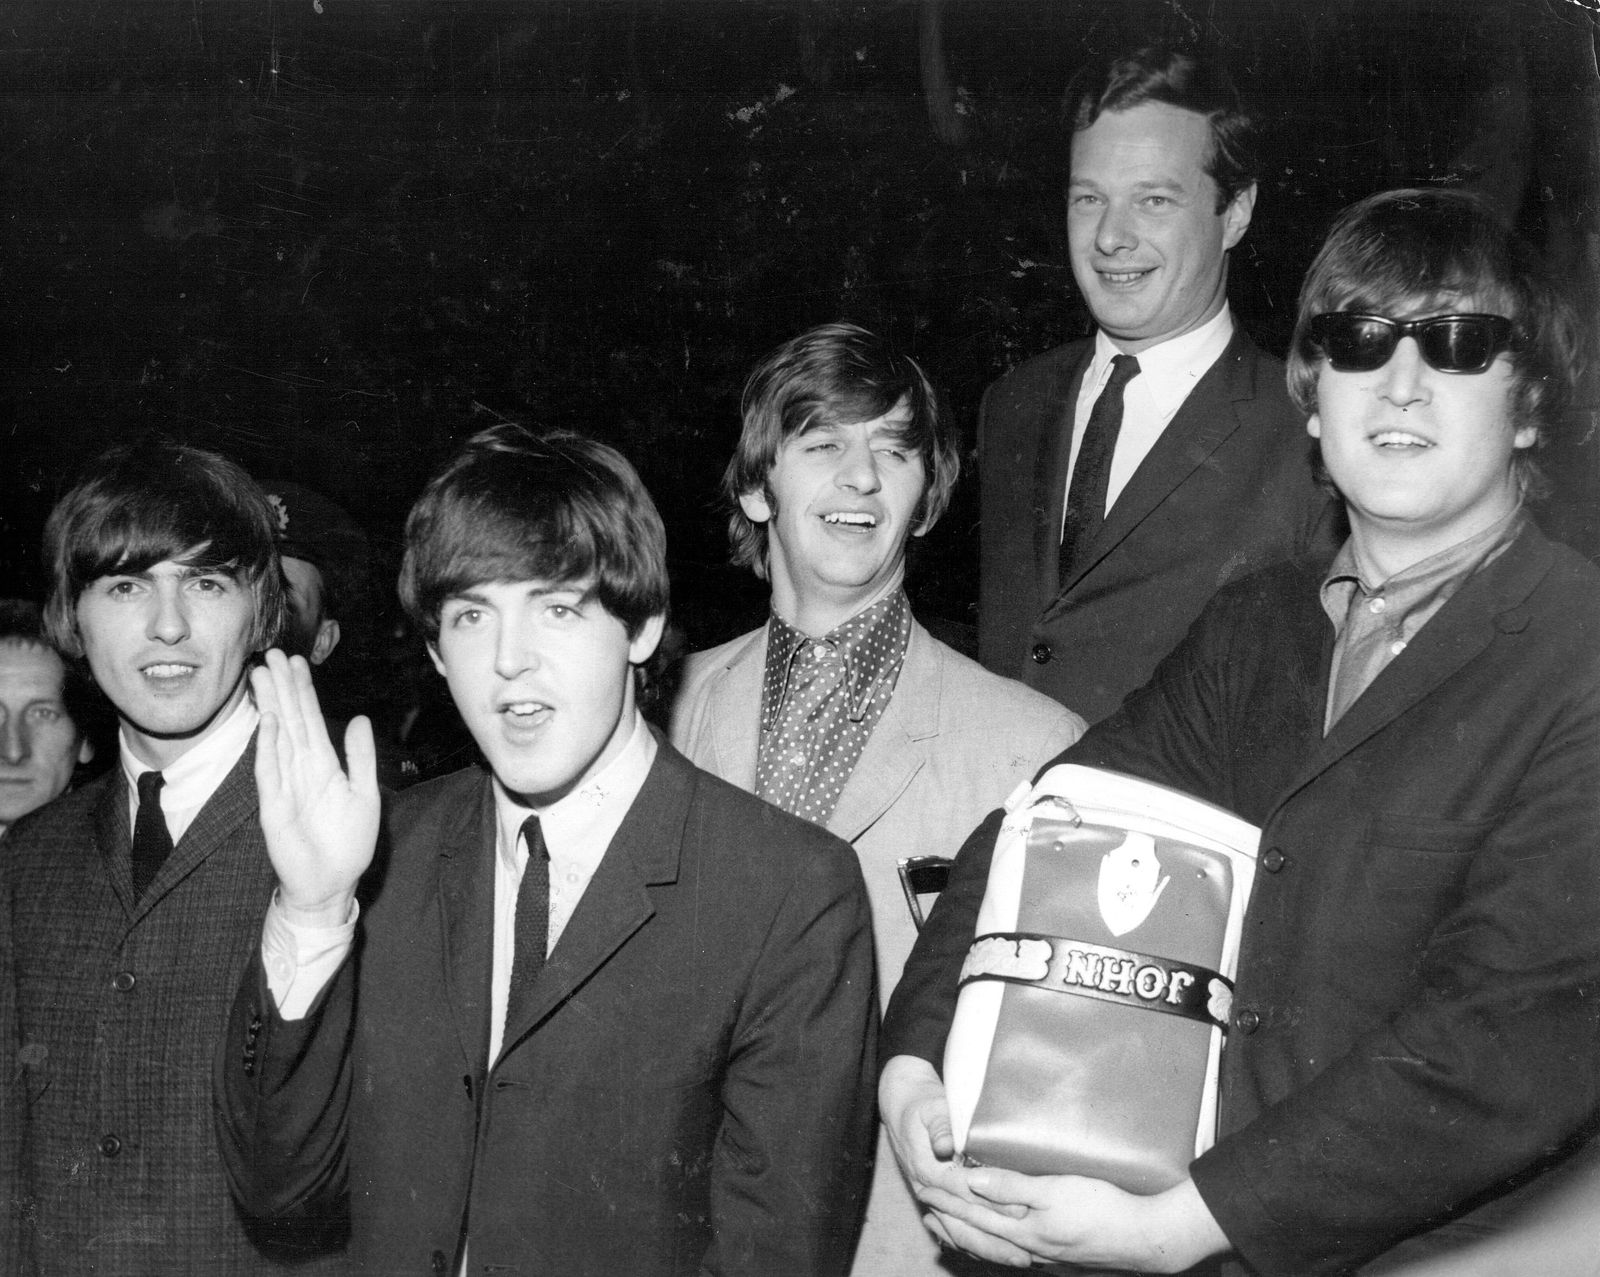 (FILE PHOTO) 50 Years Since Brian Epstein Became The Beatles Manager: A Look Back At Music Managers